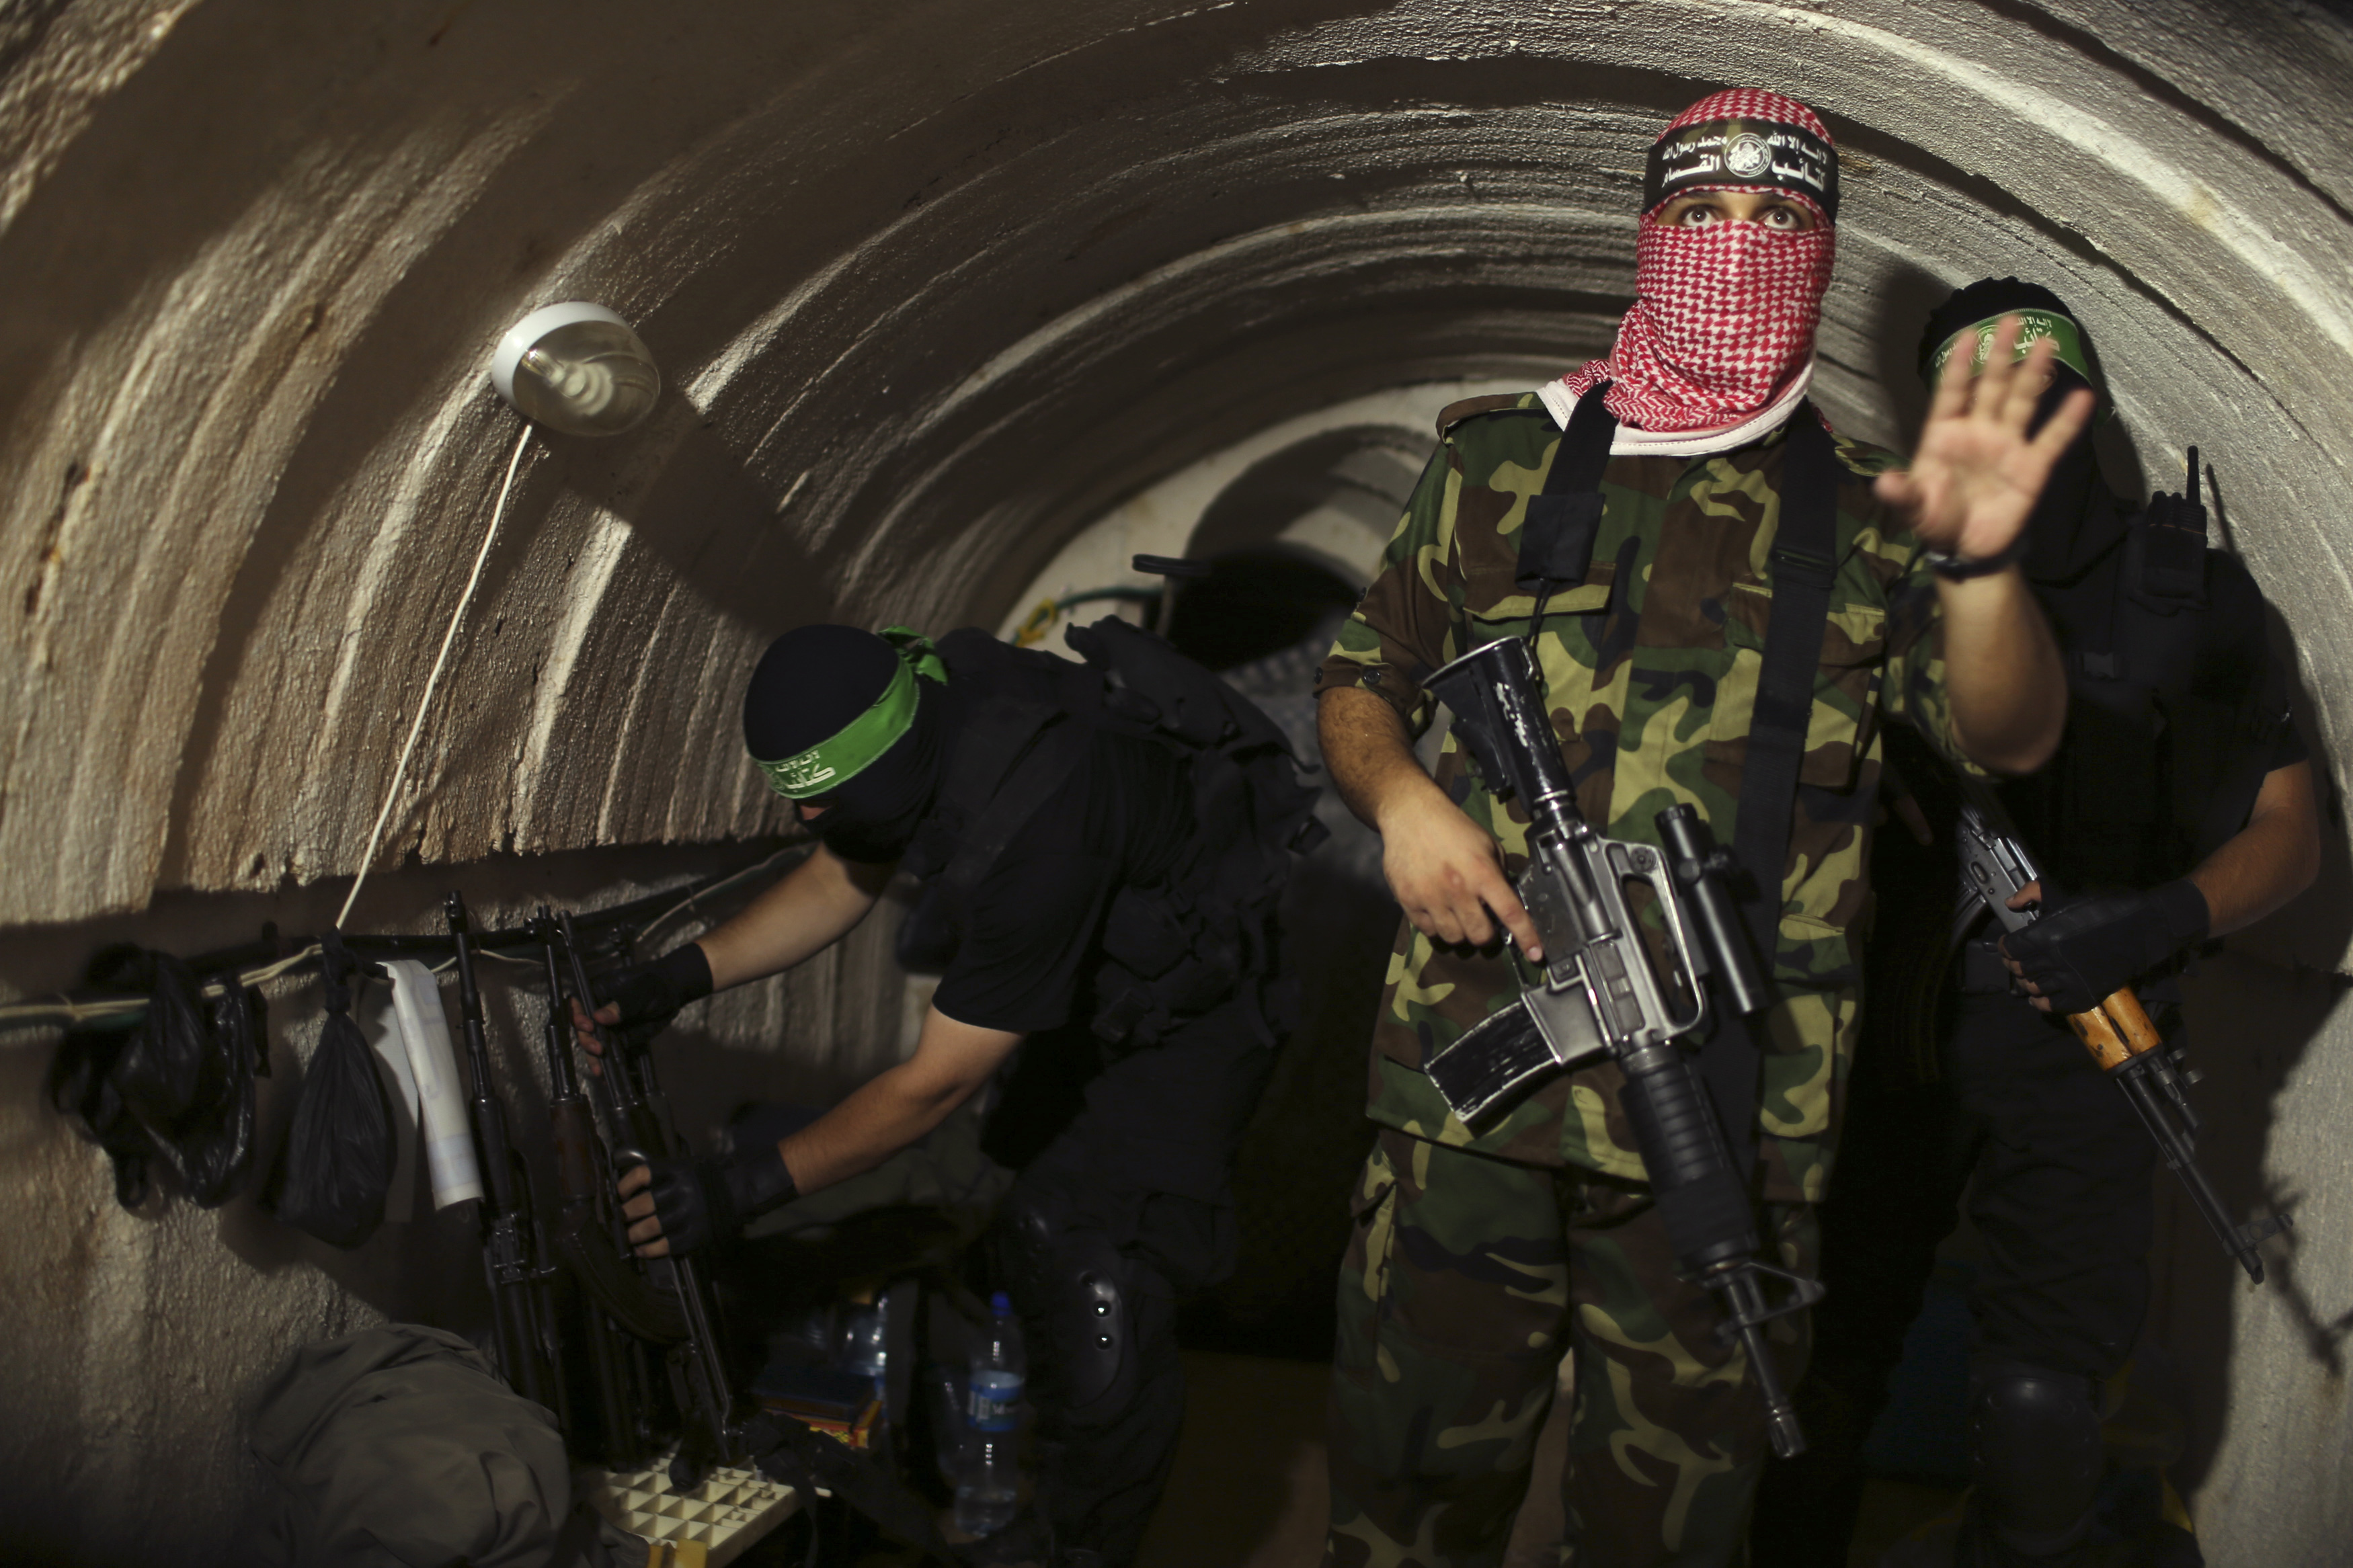 A Palestinian fighter from the Izz el-Deen al-Qassam Brigades, the armed wing of the Hamas movement, gestures inside an underground tunnel in Gaza Aug, 18, 2014.